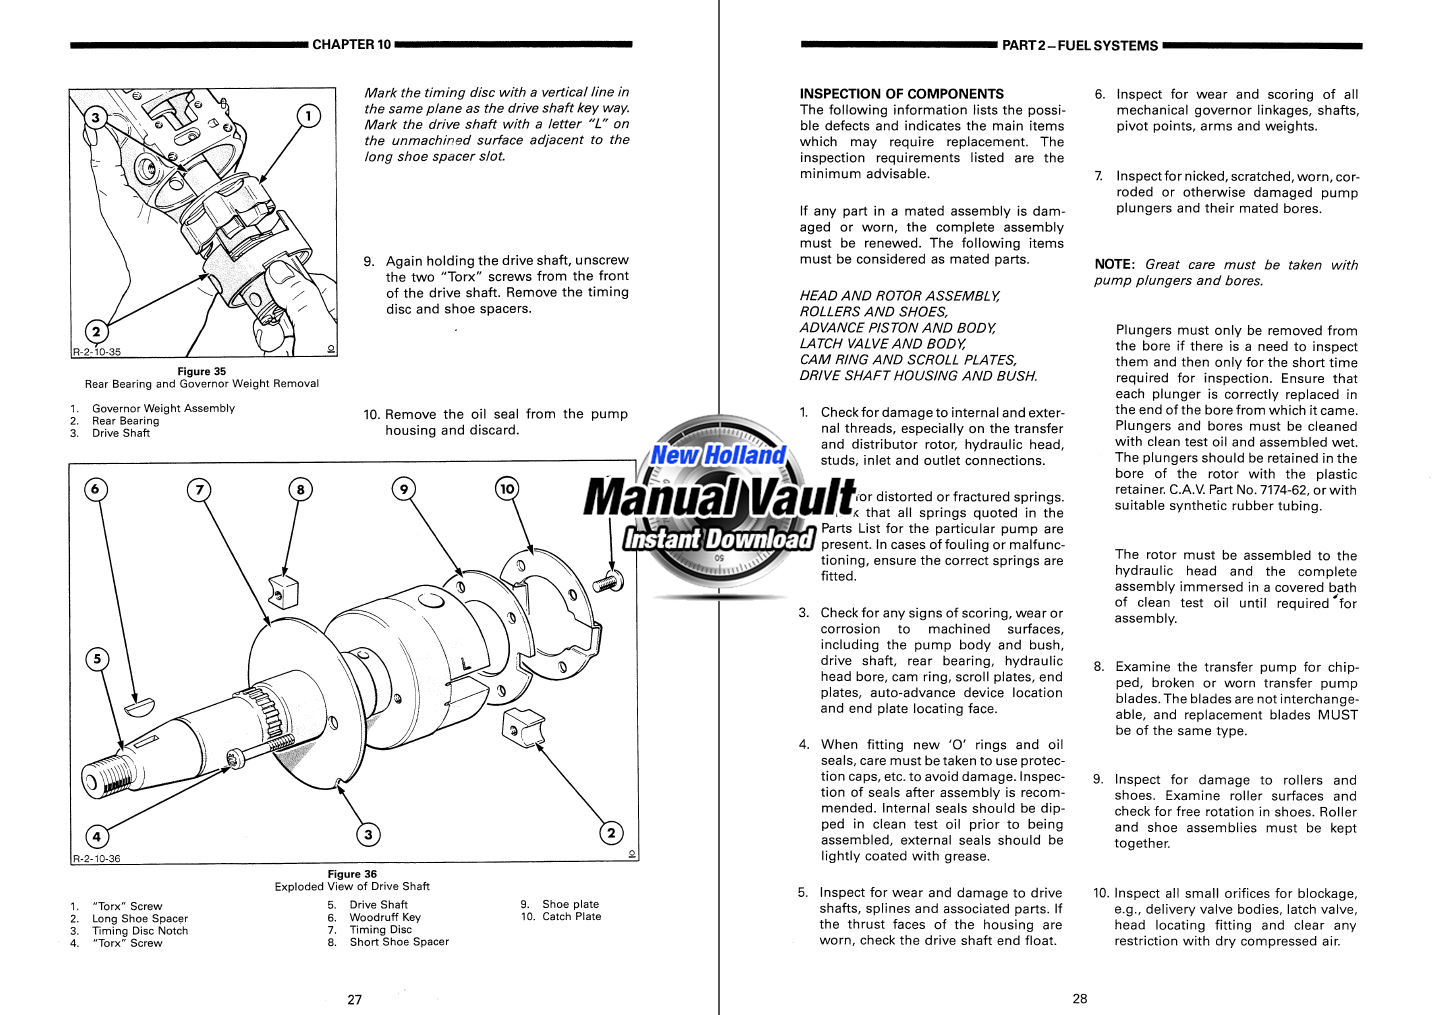 ford 2910  3910  4110  4610  5610  6610  6710  7610  7710 1984 2910 Ford Tractor Diesel ford 2910 service manual pdf